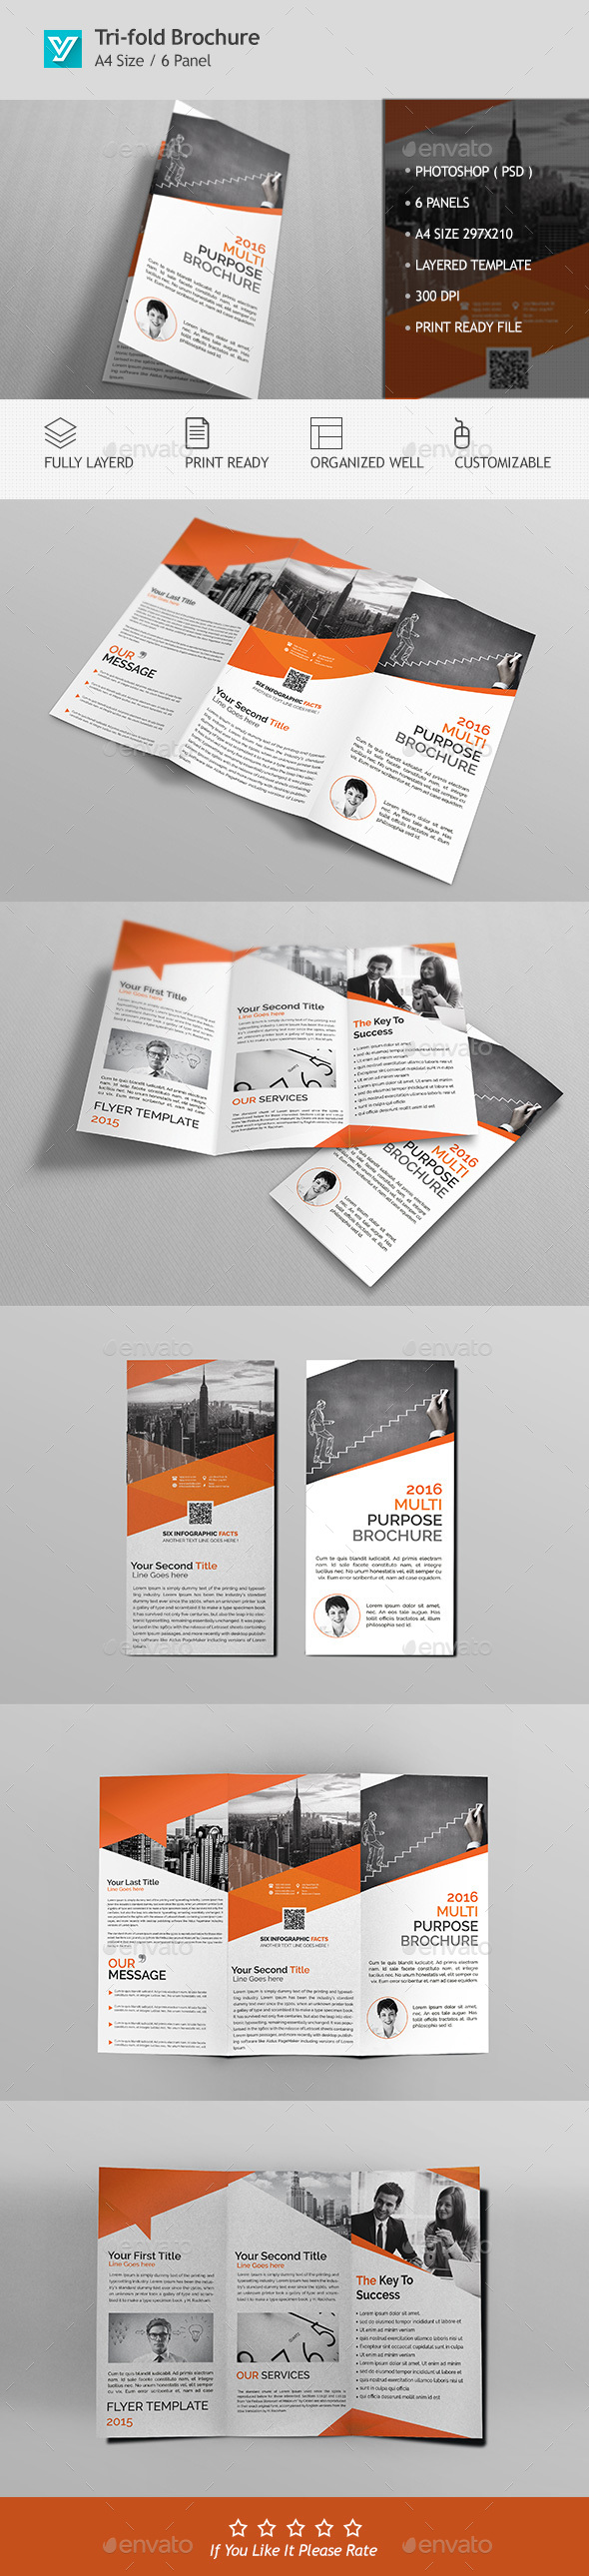 Corporate Trifold Brochure Template PSD Design Download Http - Trifold brochure template psd